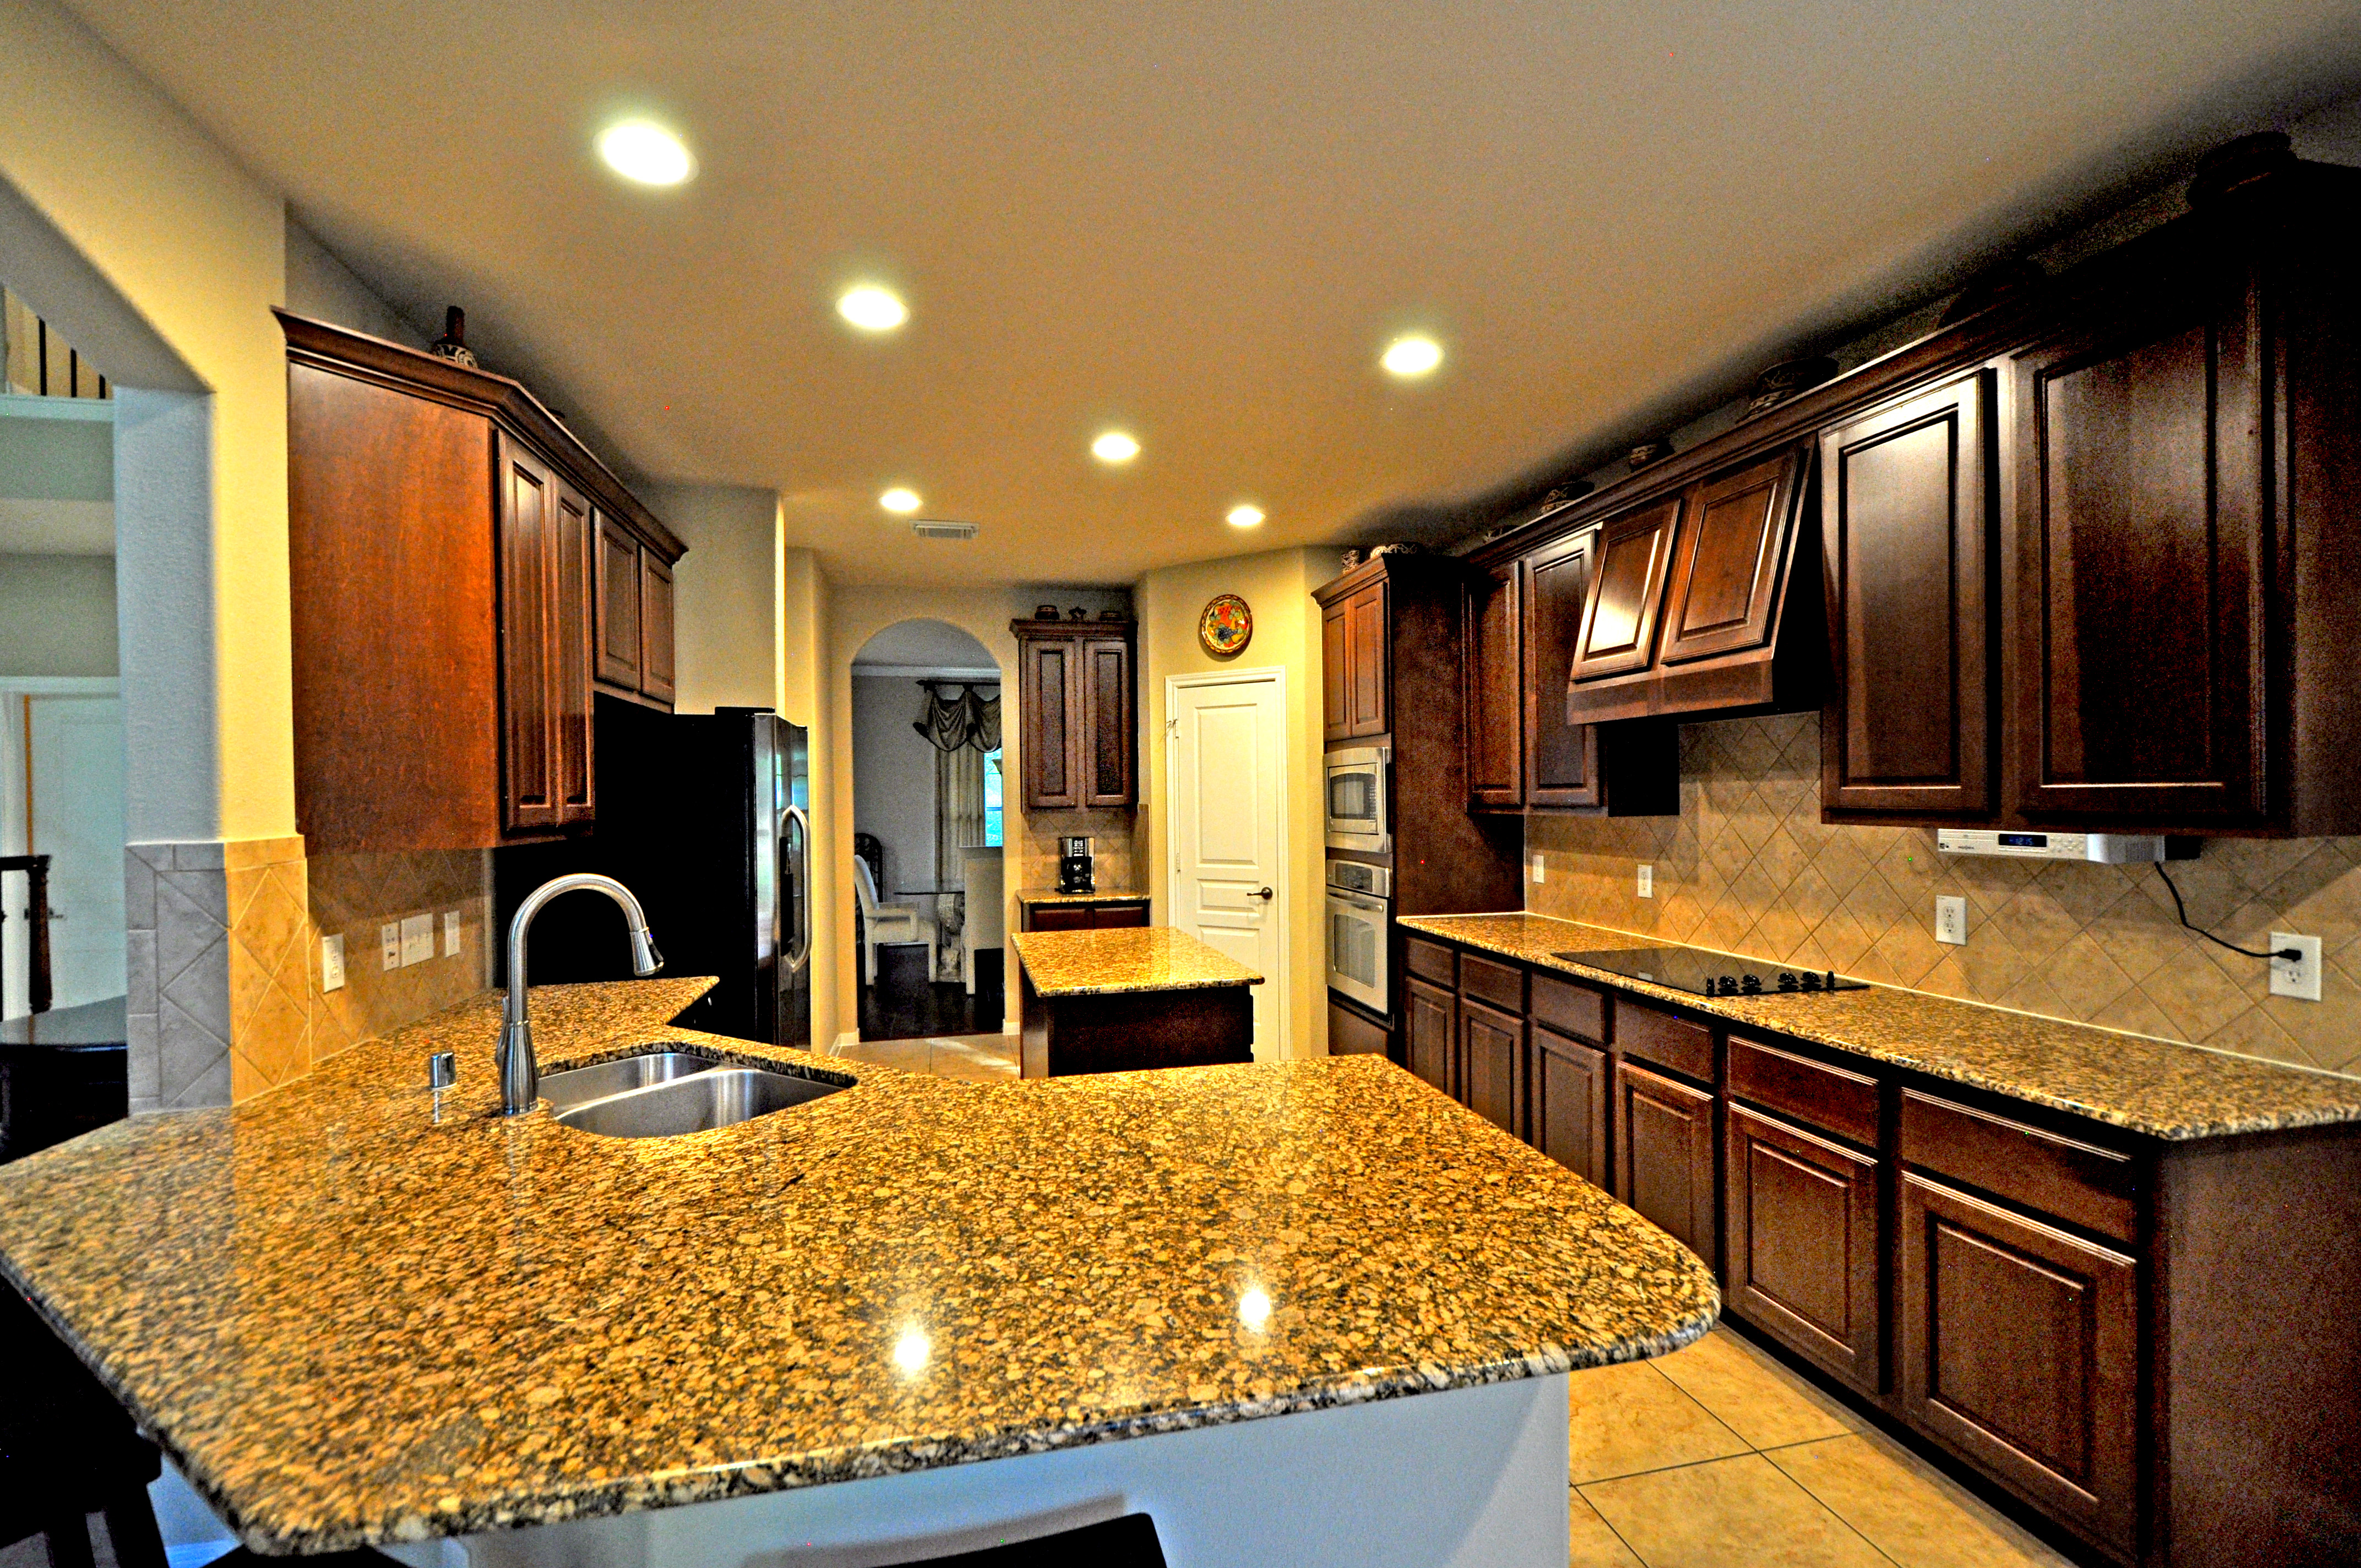 Granite Counter Top with Sink - Copy